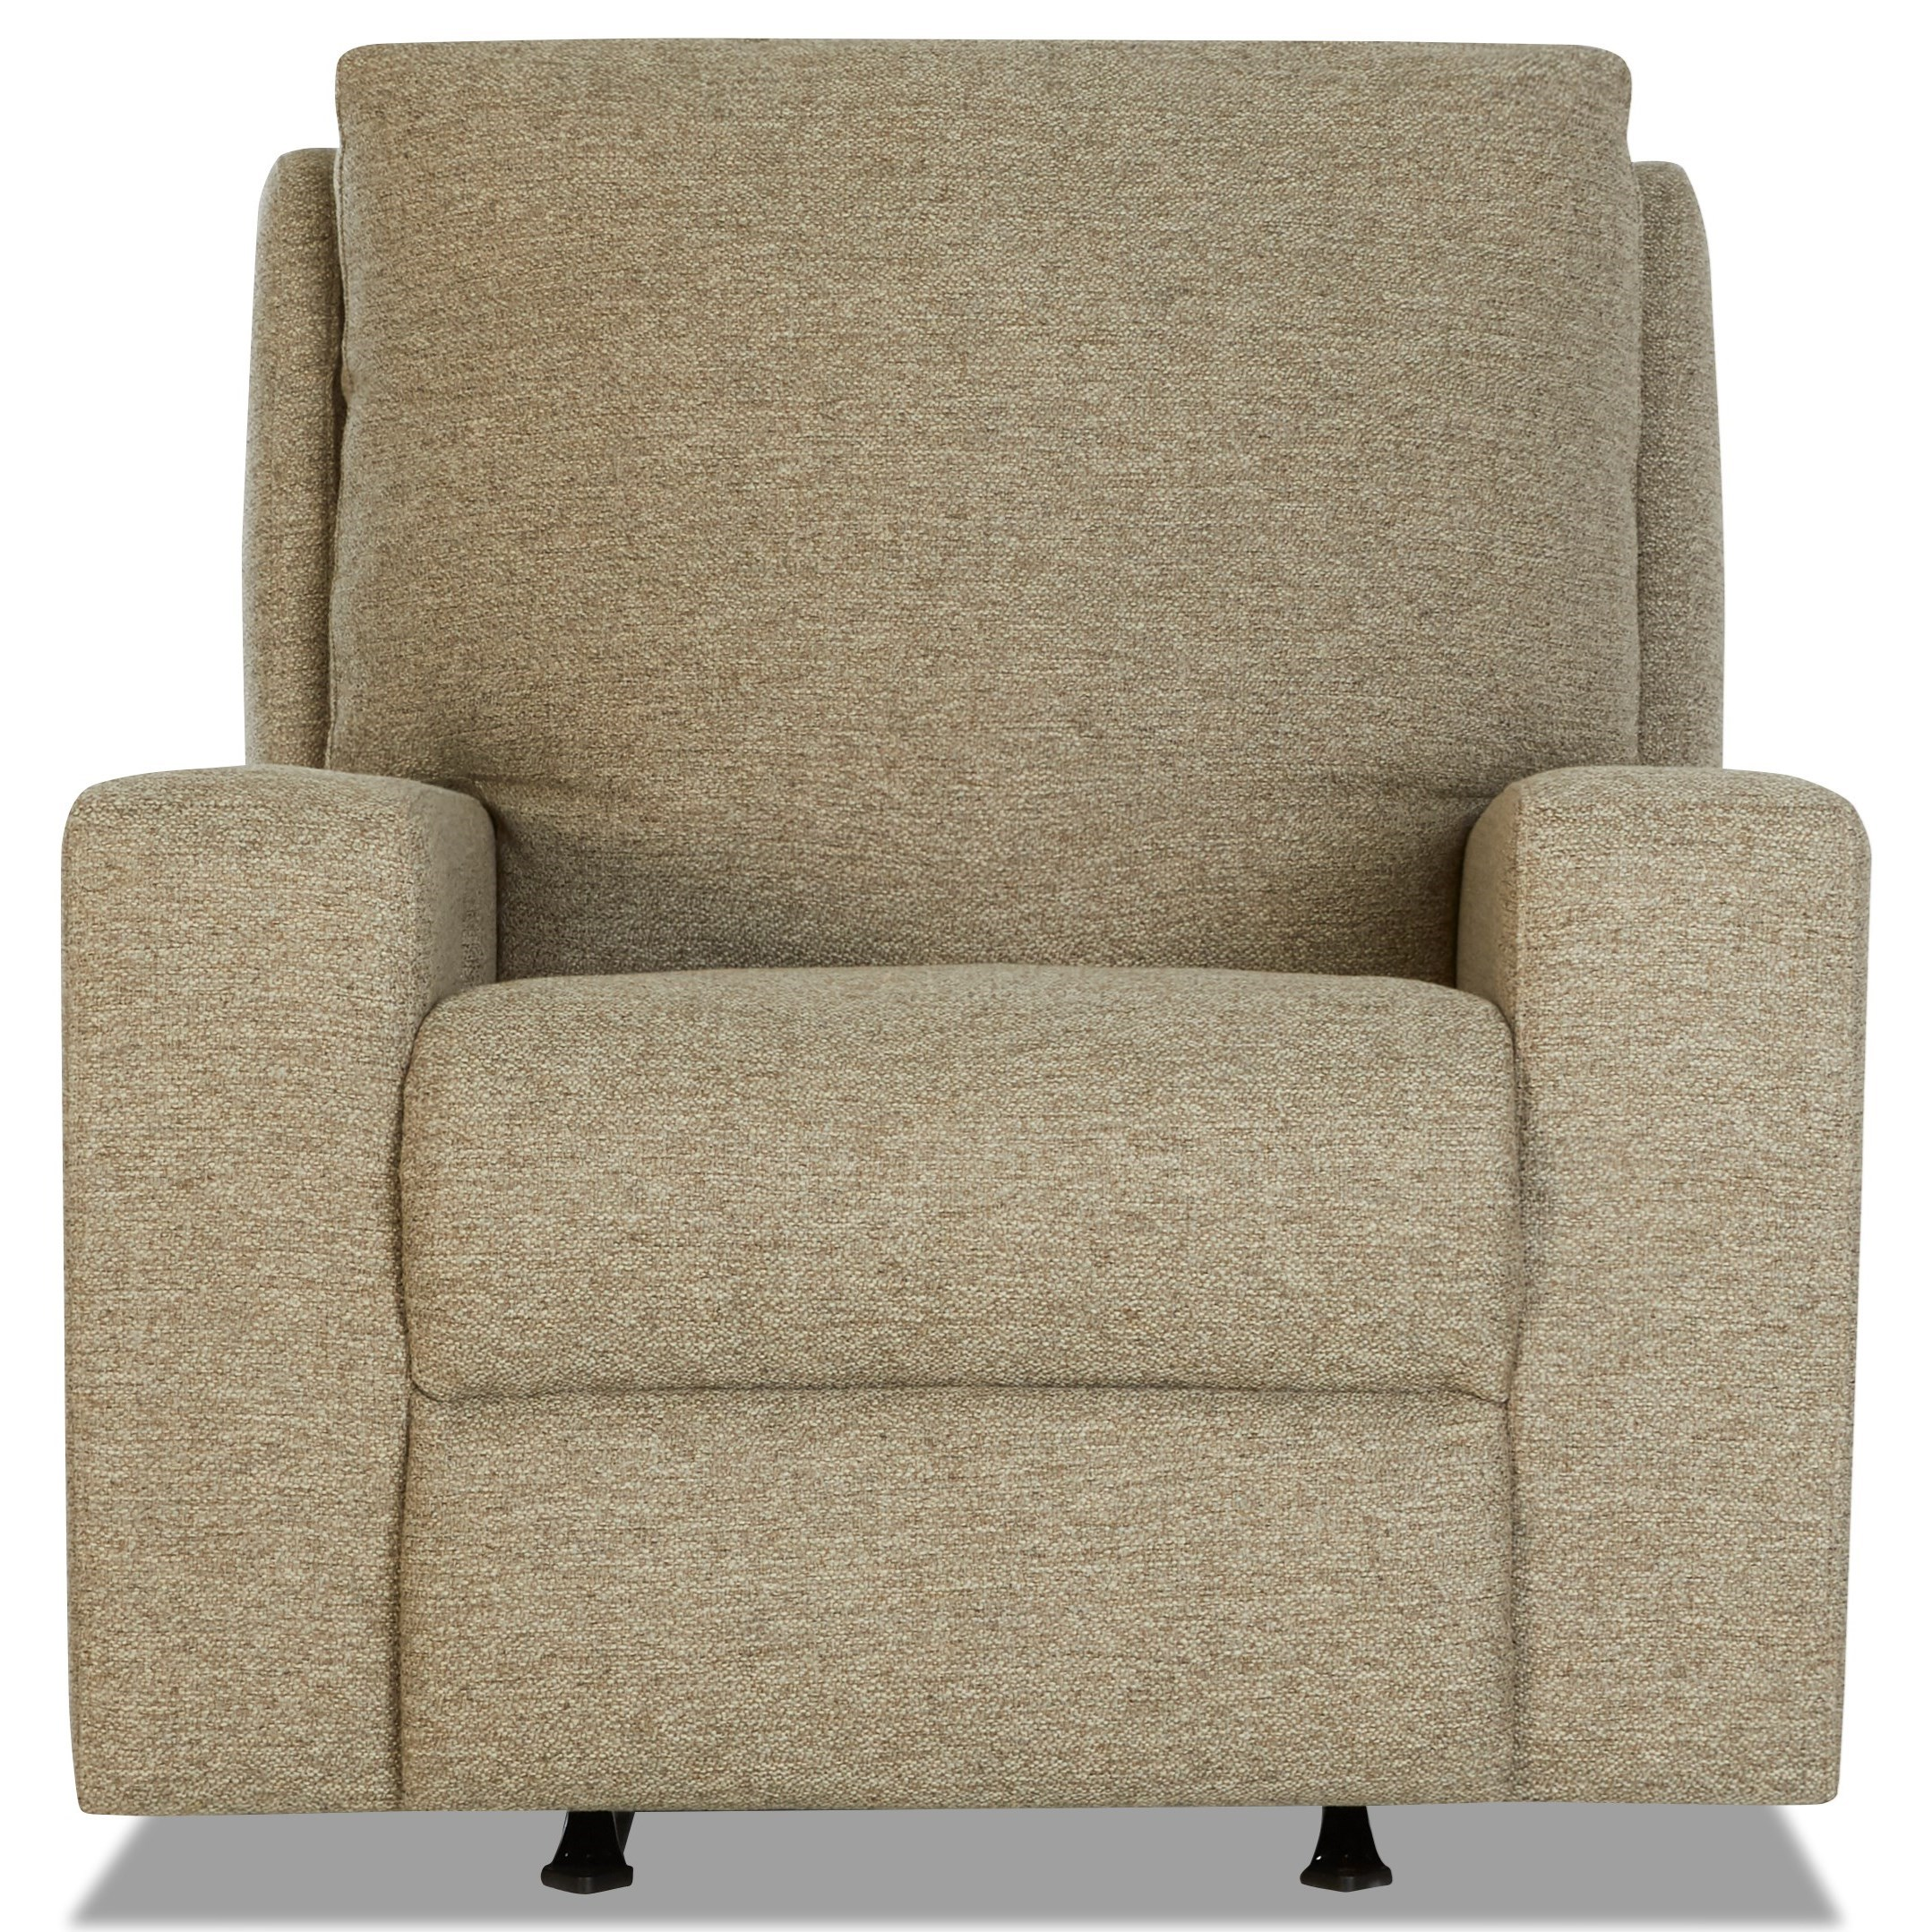 Contemporary Rocking Reclining Chair